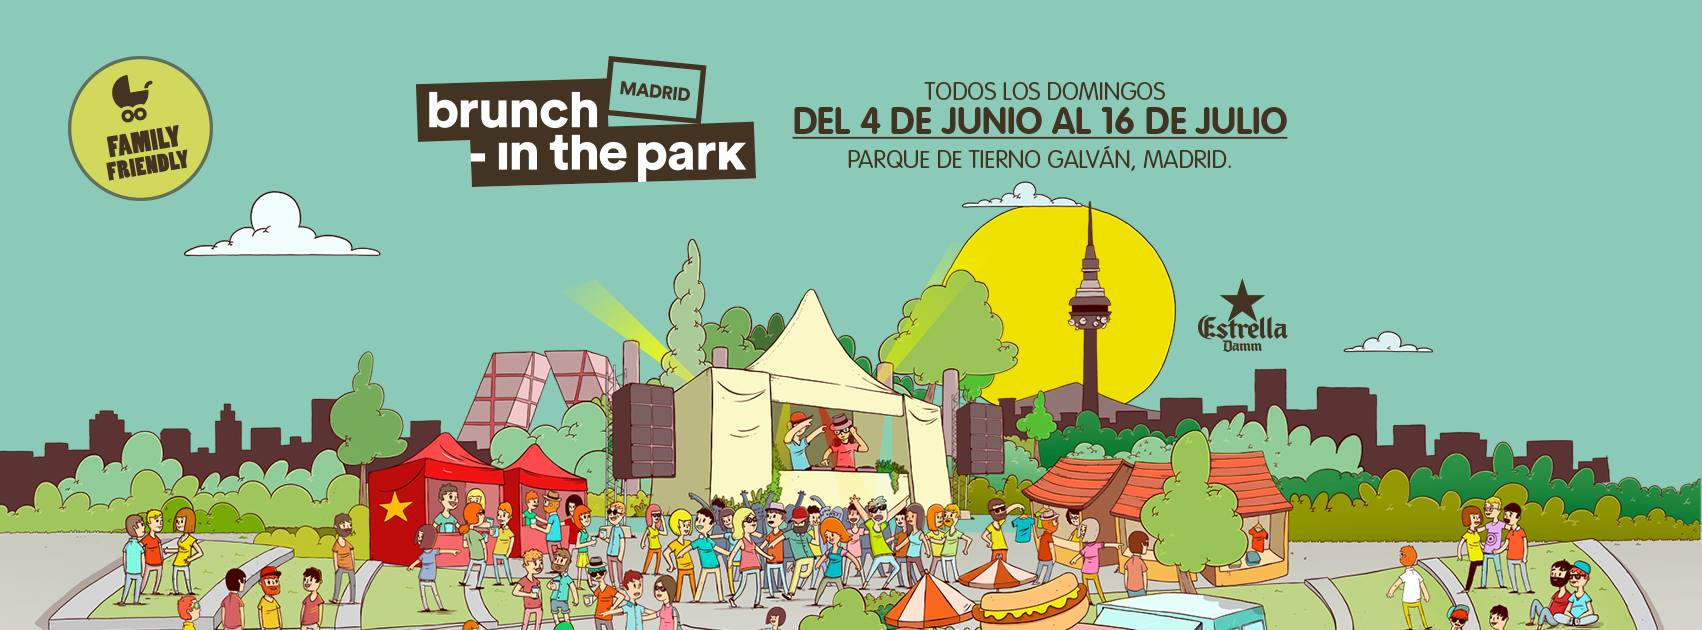 Brunch In The Park Madrid_NRFmagazine